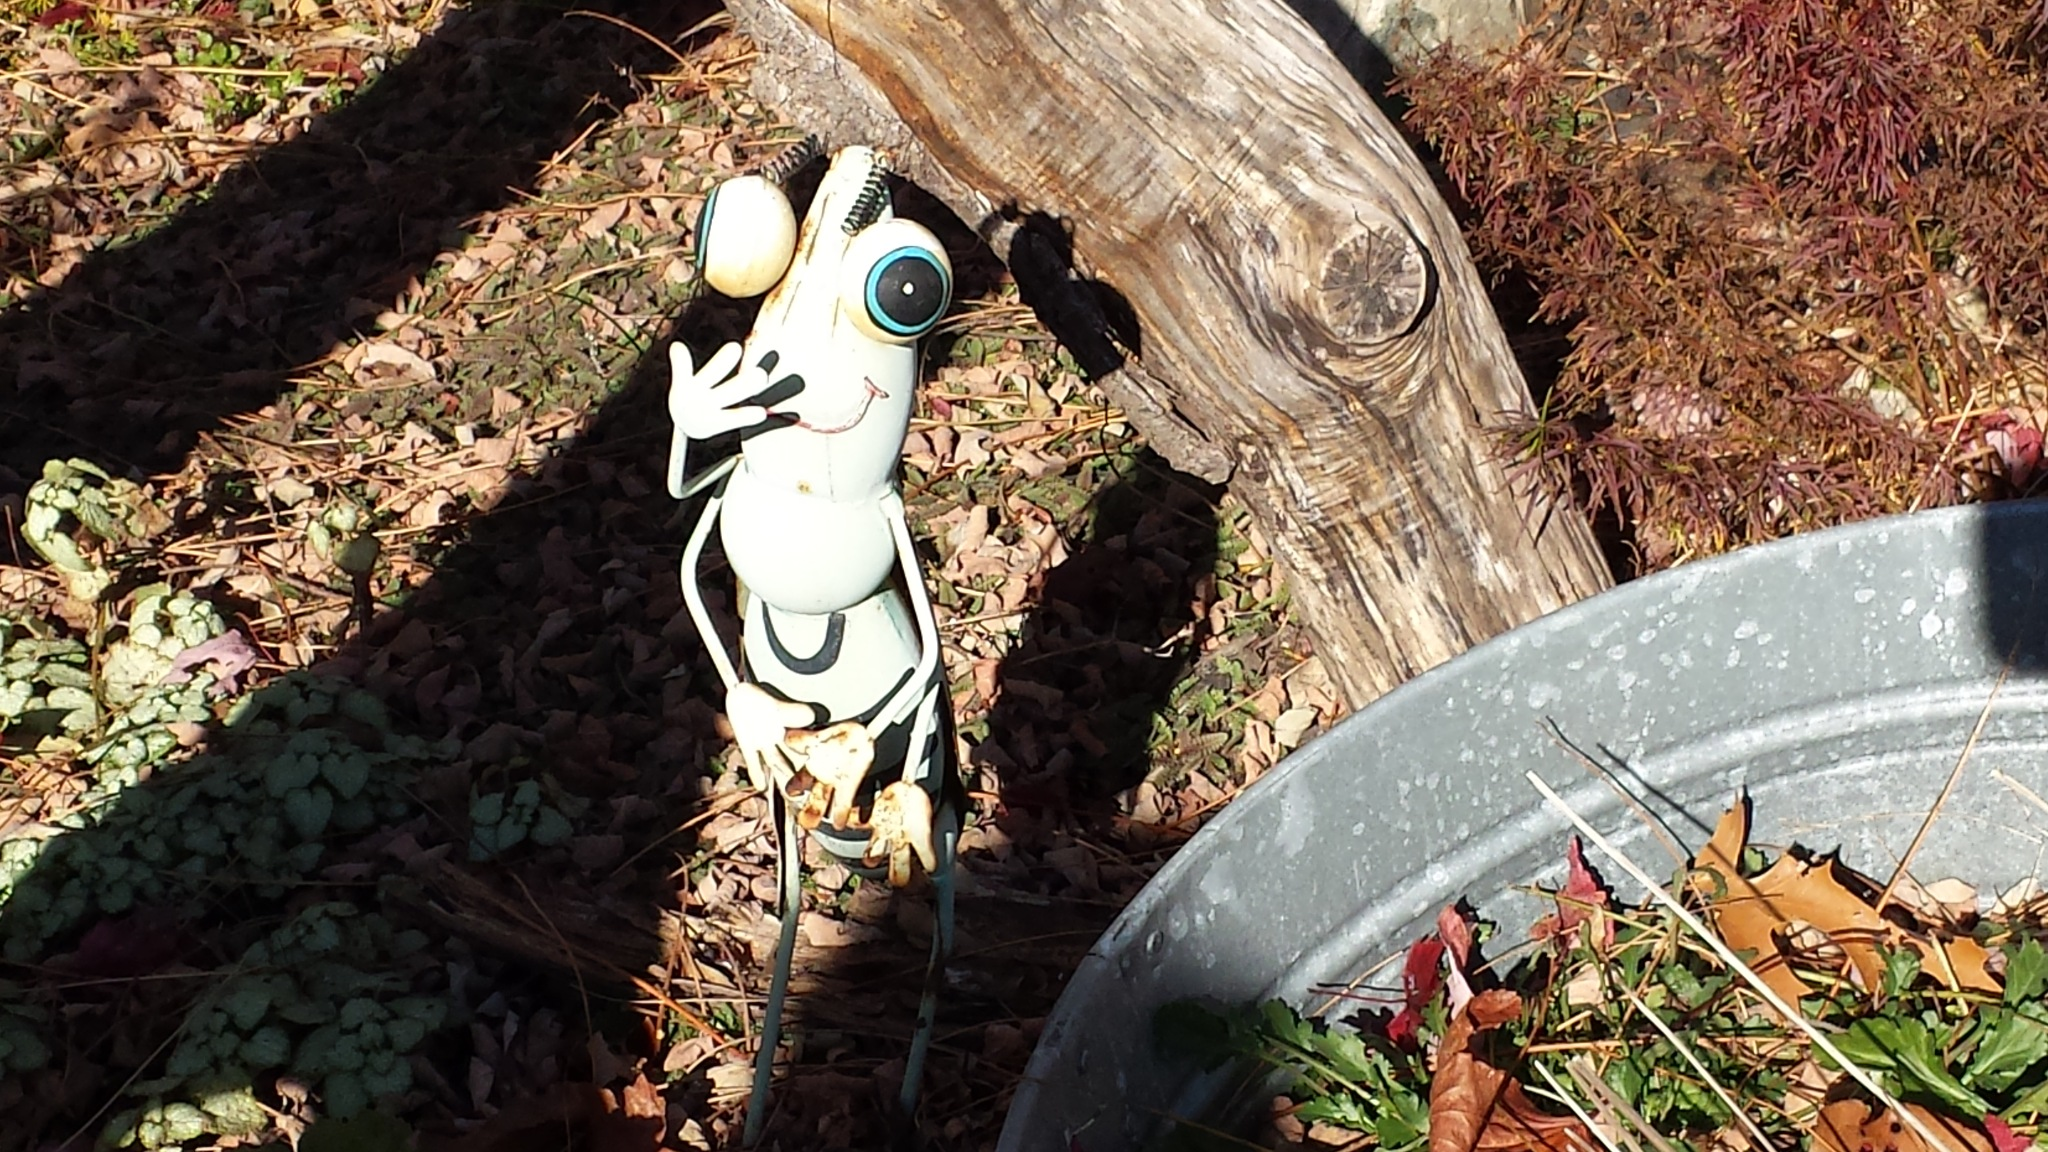 You Just Never Know Who's Lurking In The Bushes... by Cary J.Casse